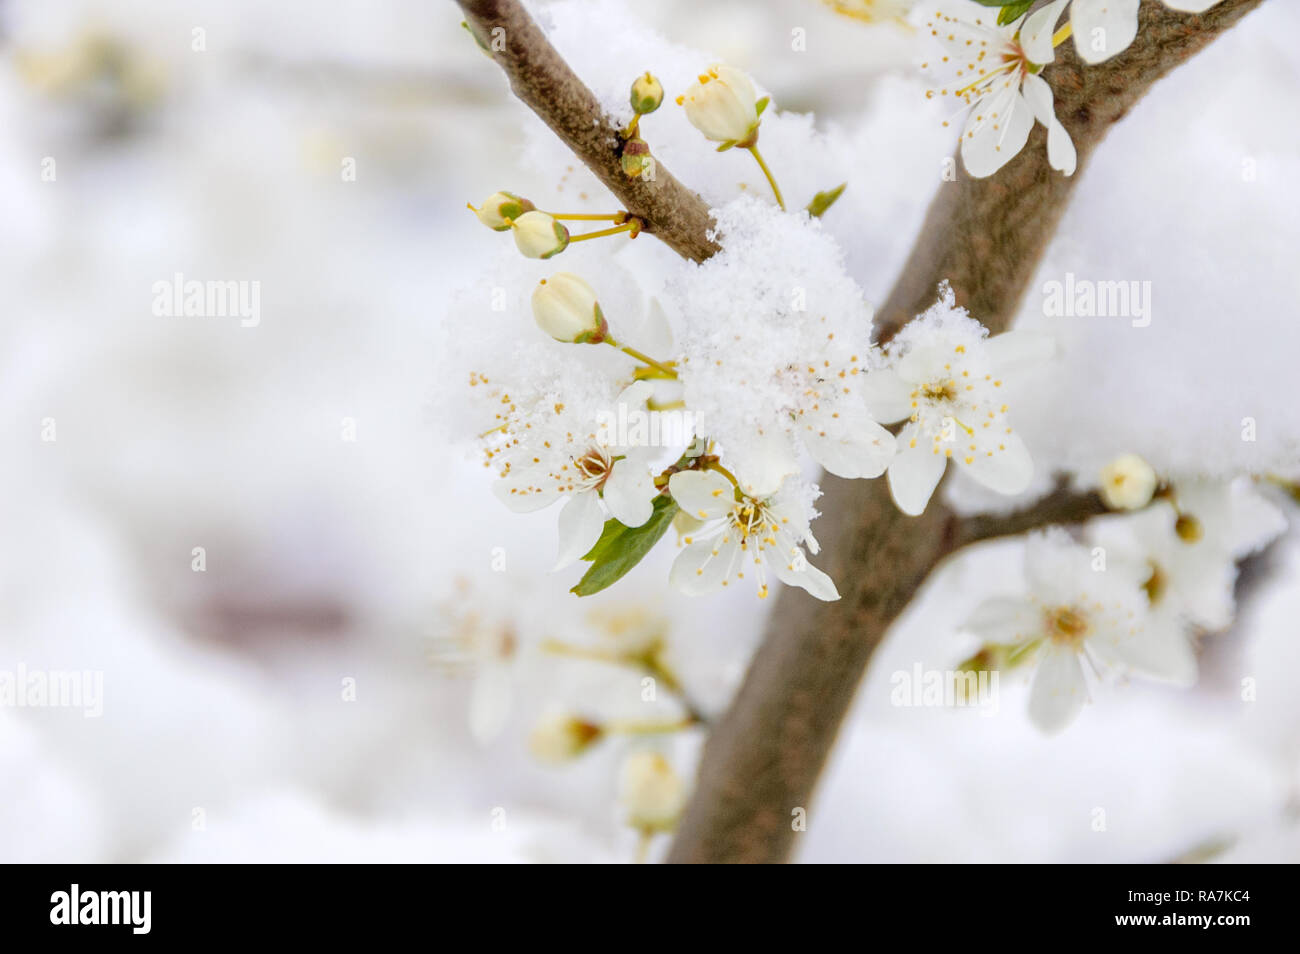 A dusting of snow has fallen on a branch of a tree with white blossoming flowers during early spring. - Stock Image